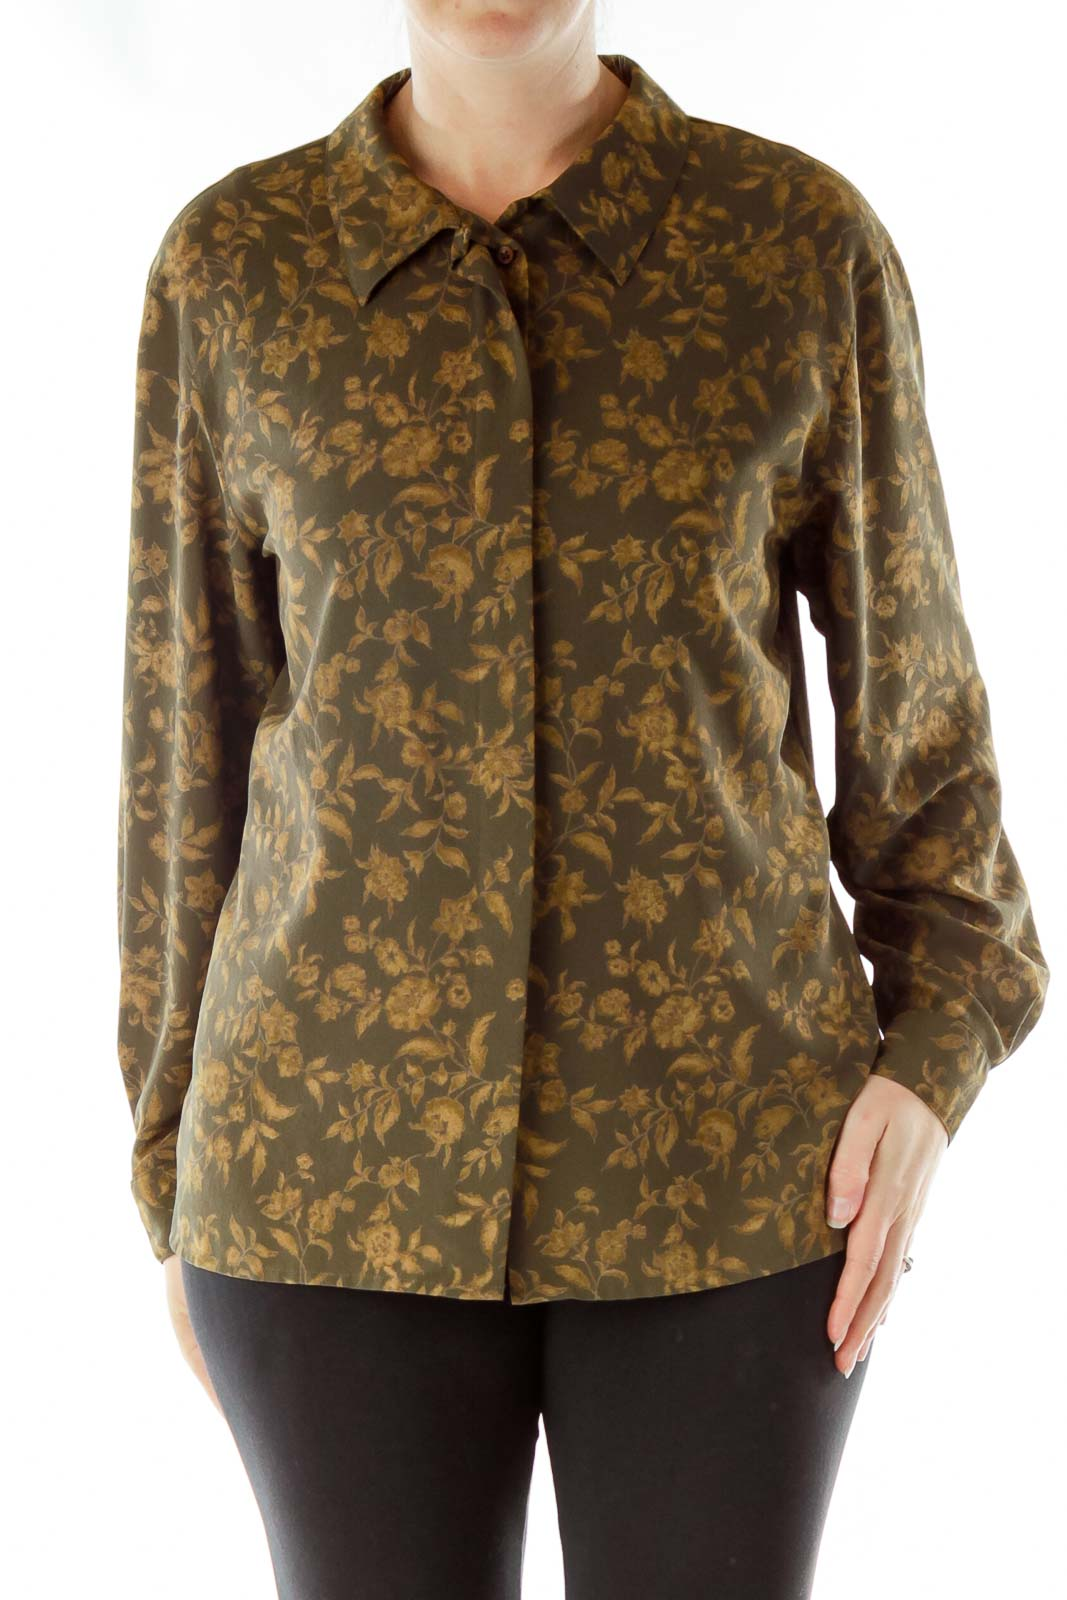 Green Gold Floral Print Blouse Front